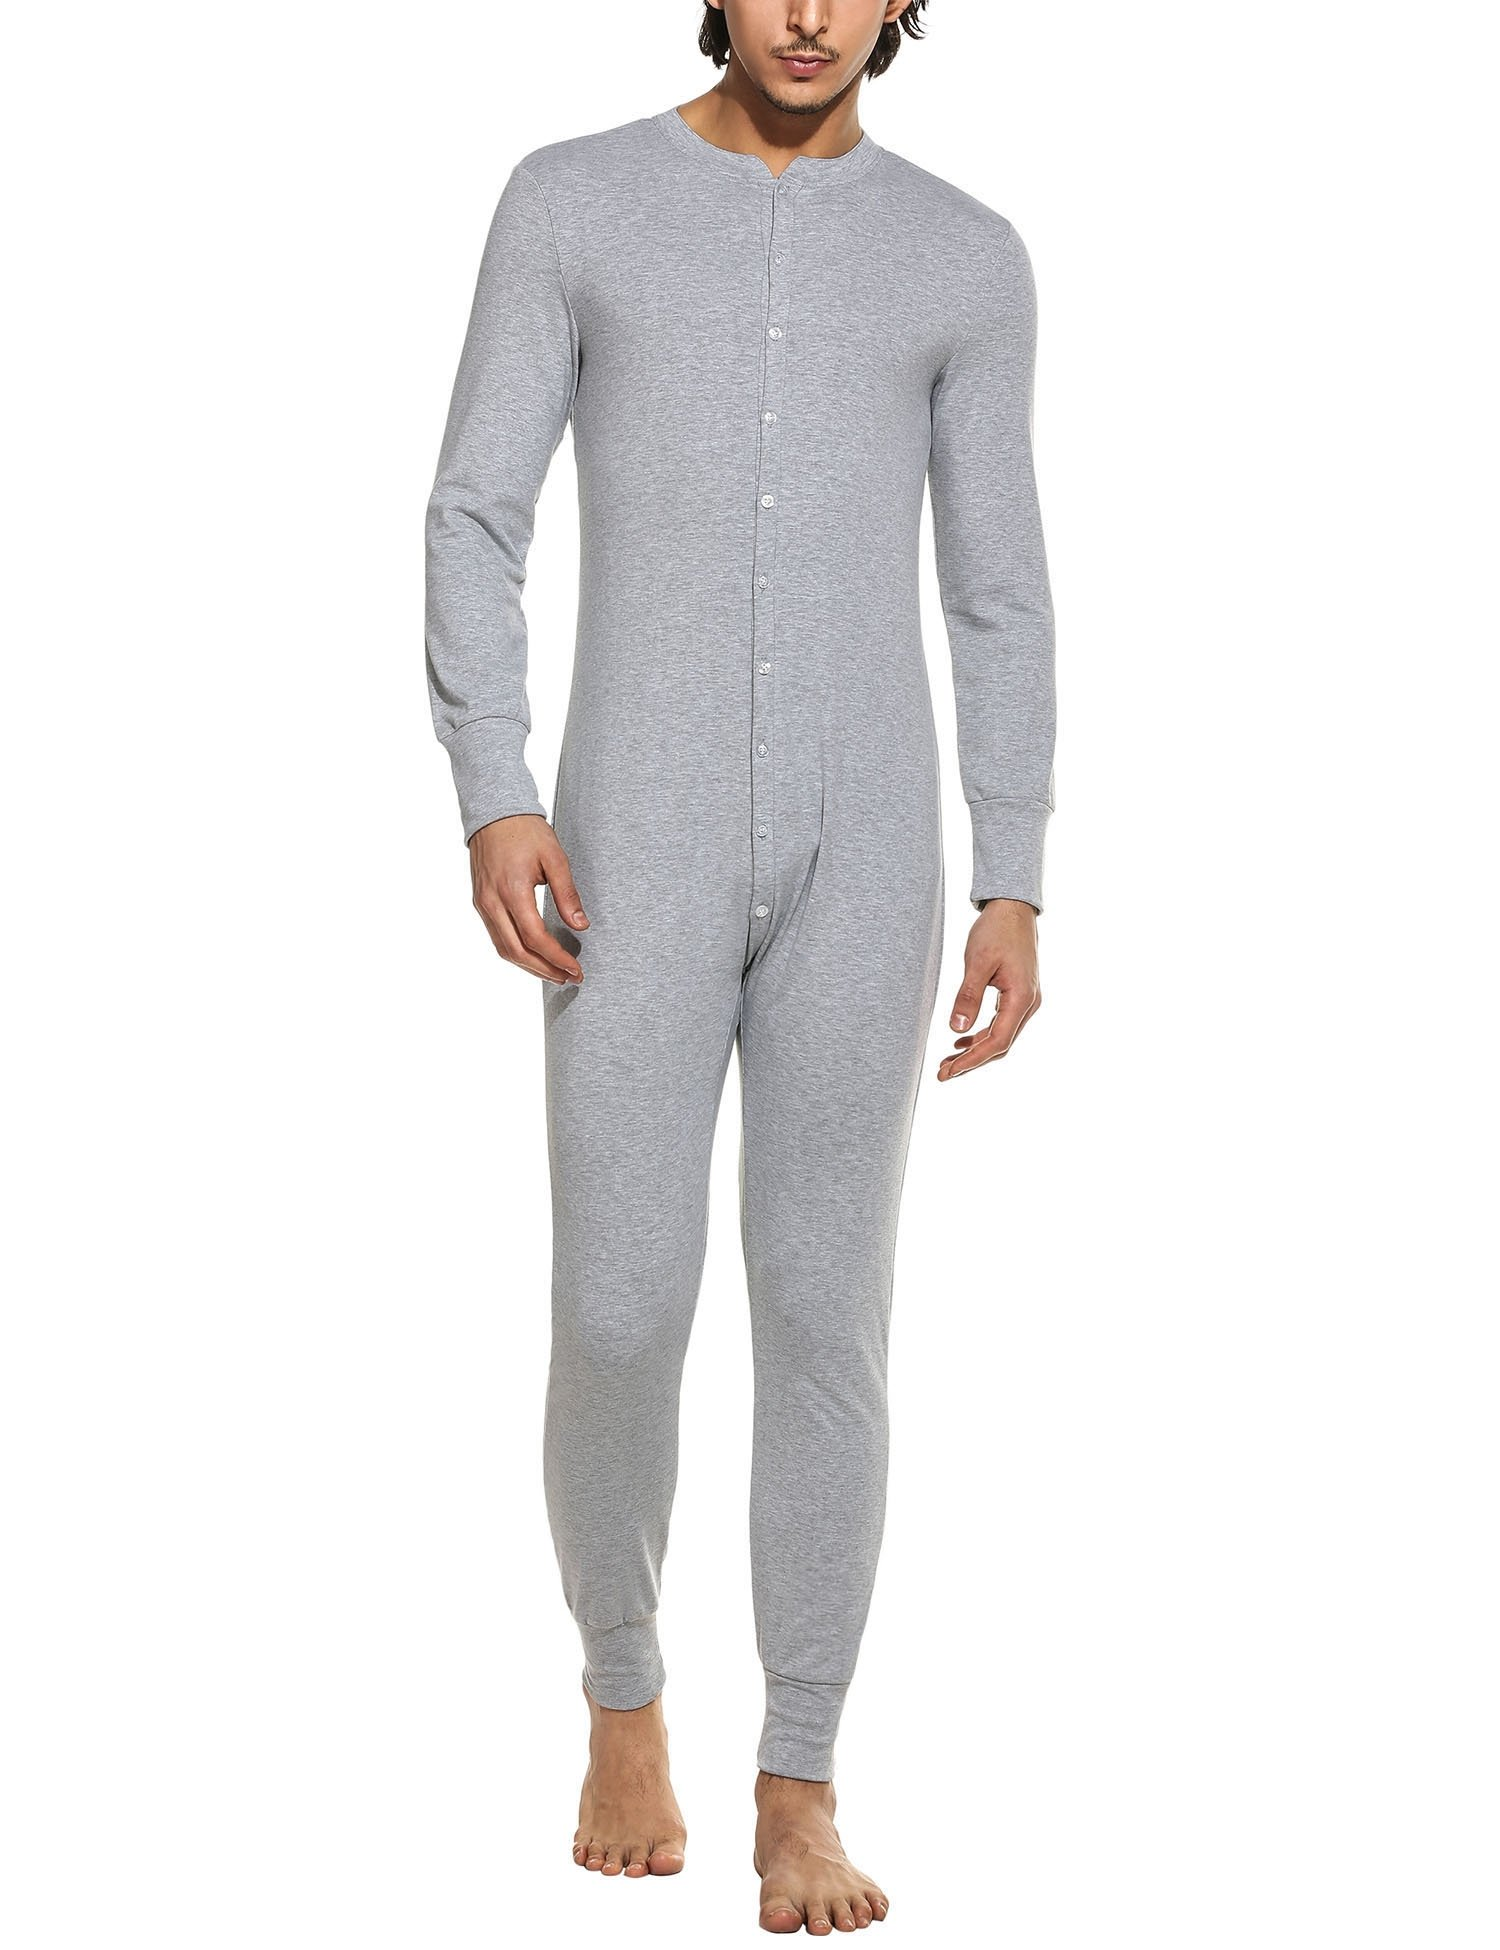 HOTOUCH Mens Thermal Underwear All In One Union Suit/Thermal Body Suit Light Gray M by Hotouch